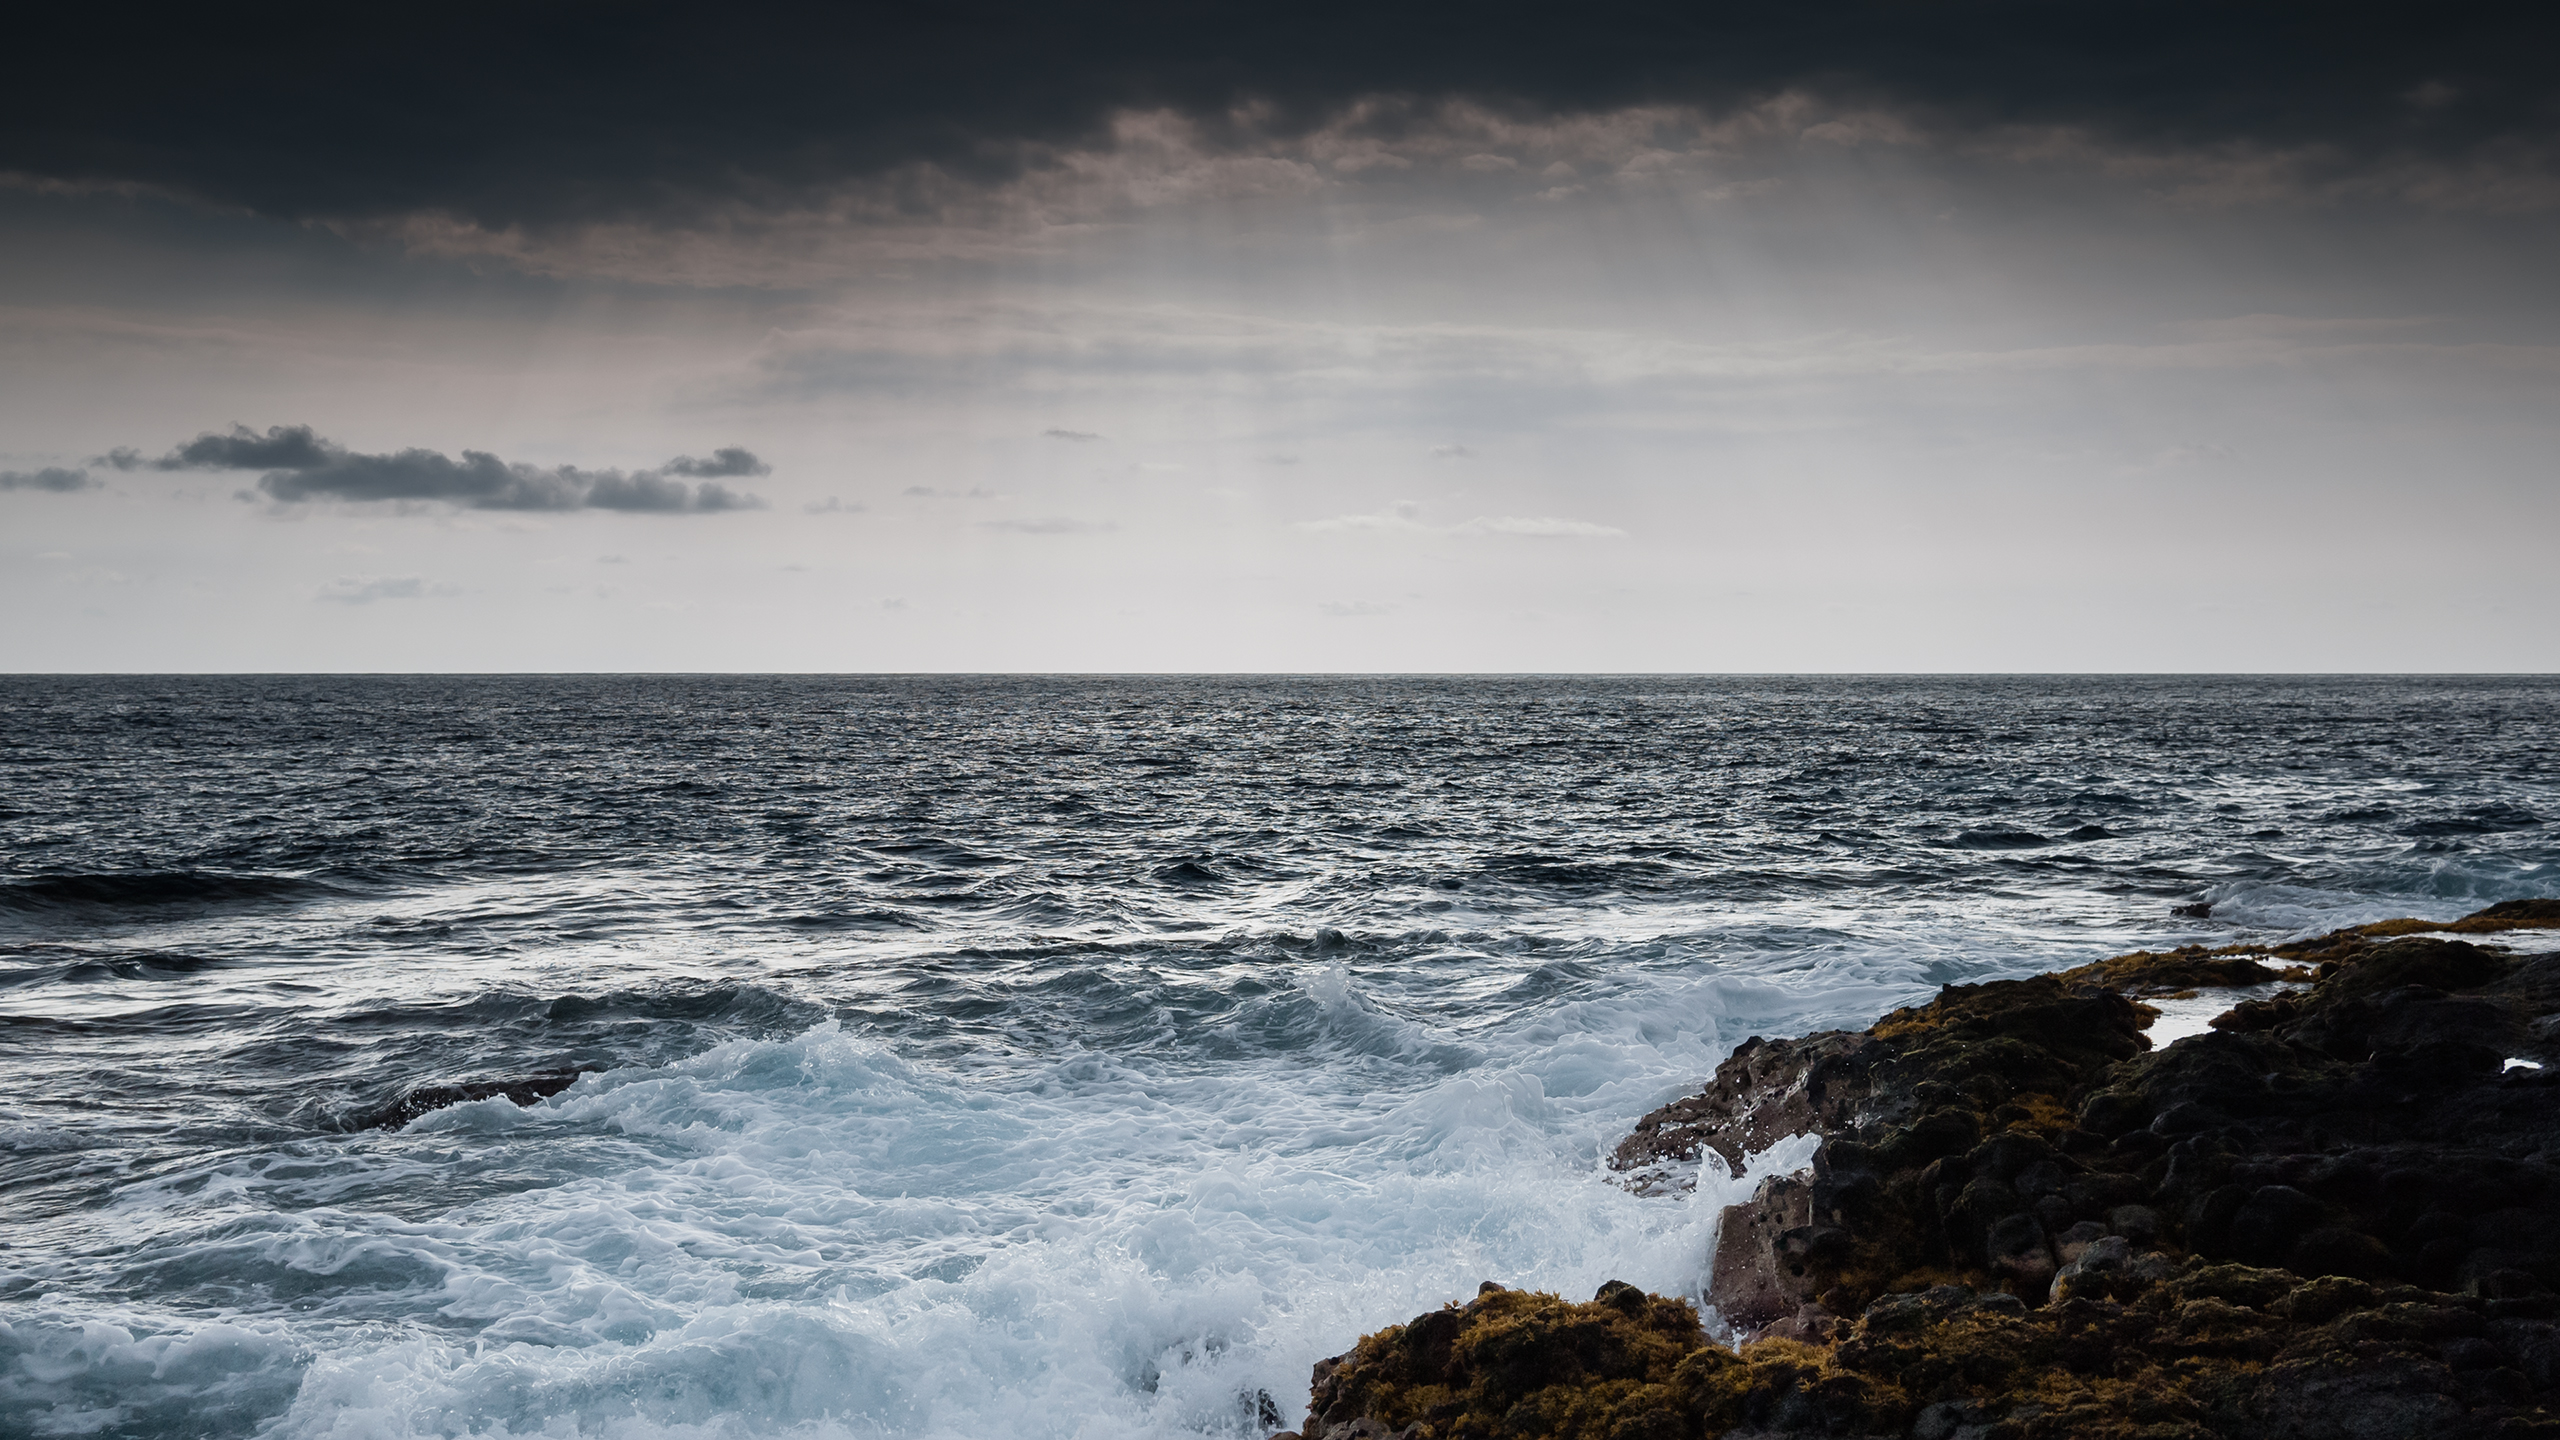 stormy_sea_wallpaper_2560x1440